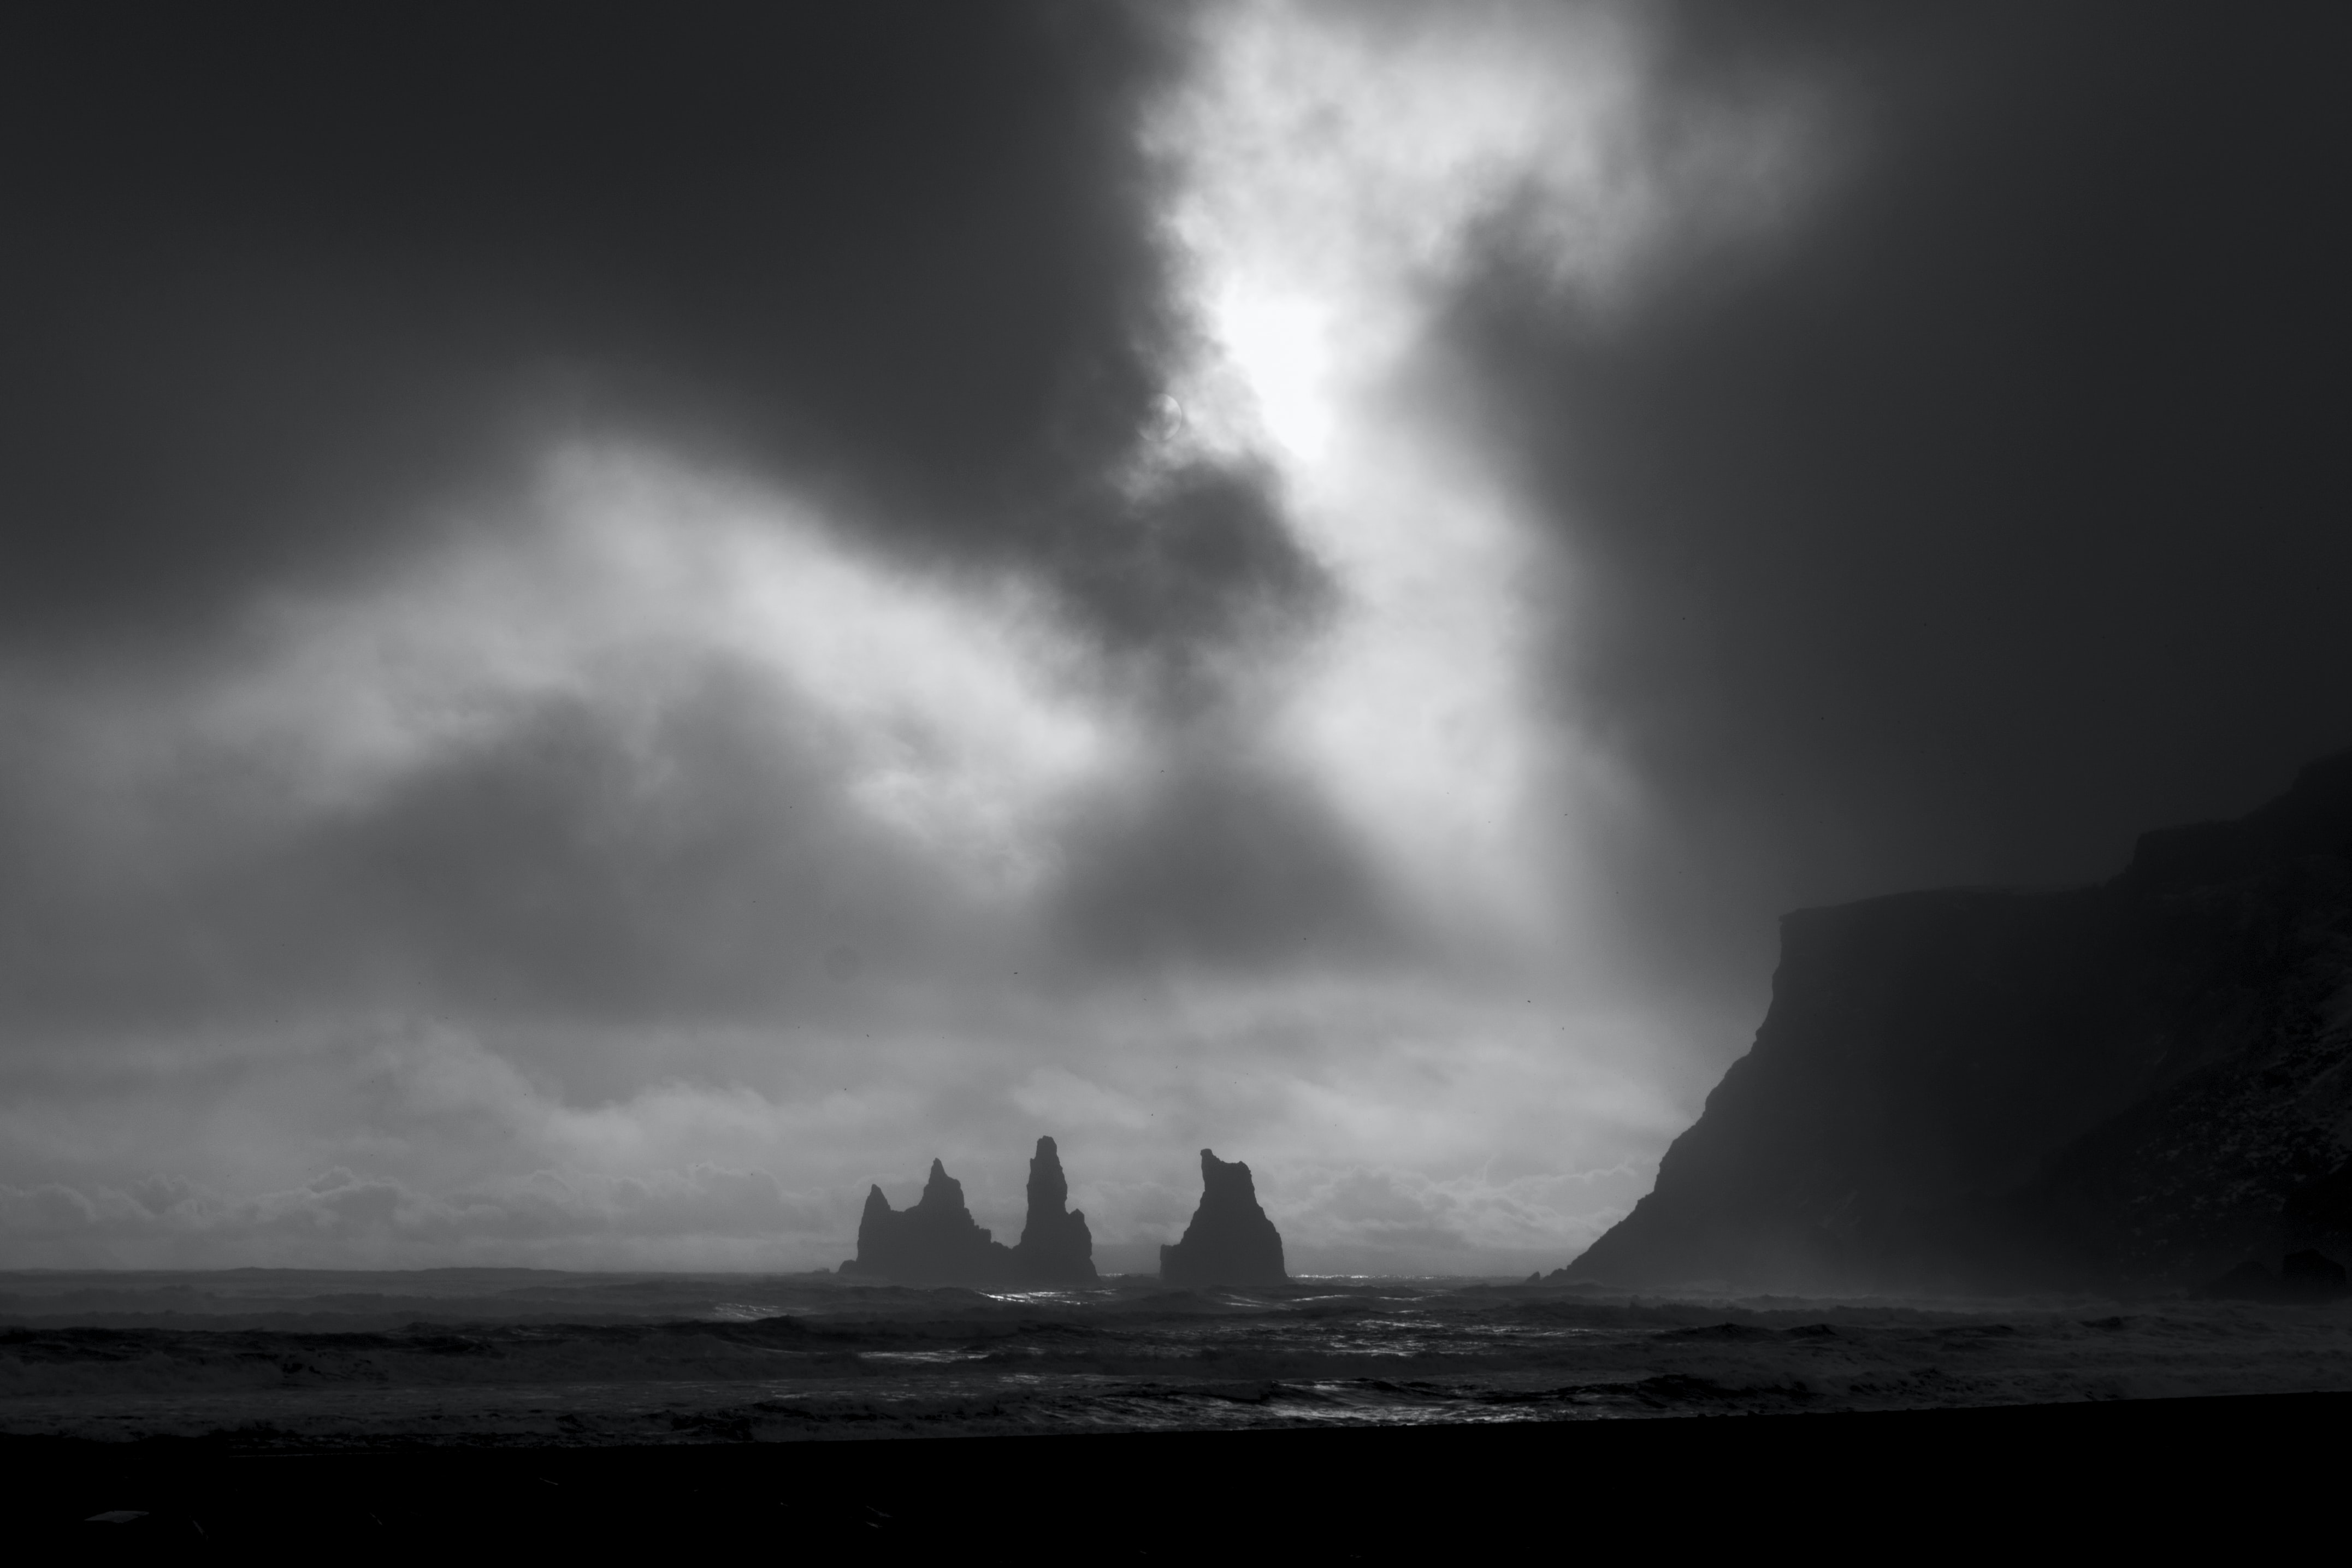 Dark sky over rock formations in a stormy sea